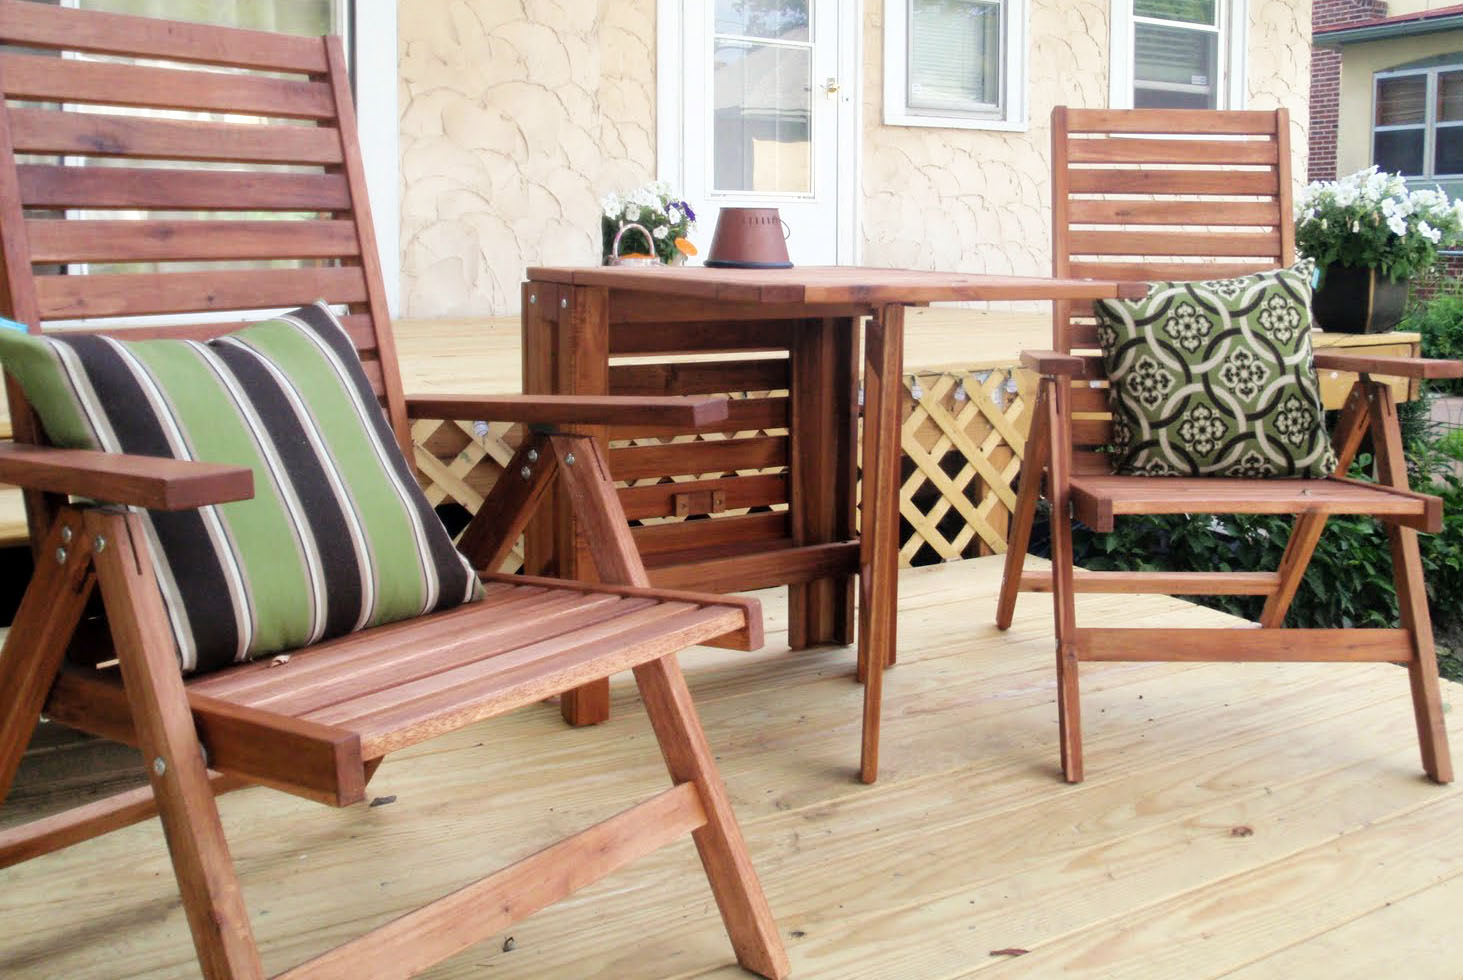 Small balcony furniture option homesfeed for Small outdoor table ideas